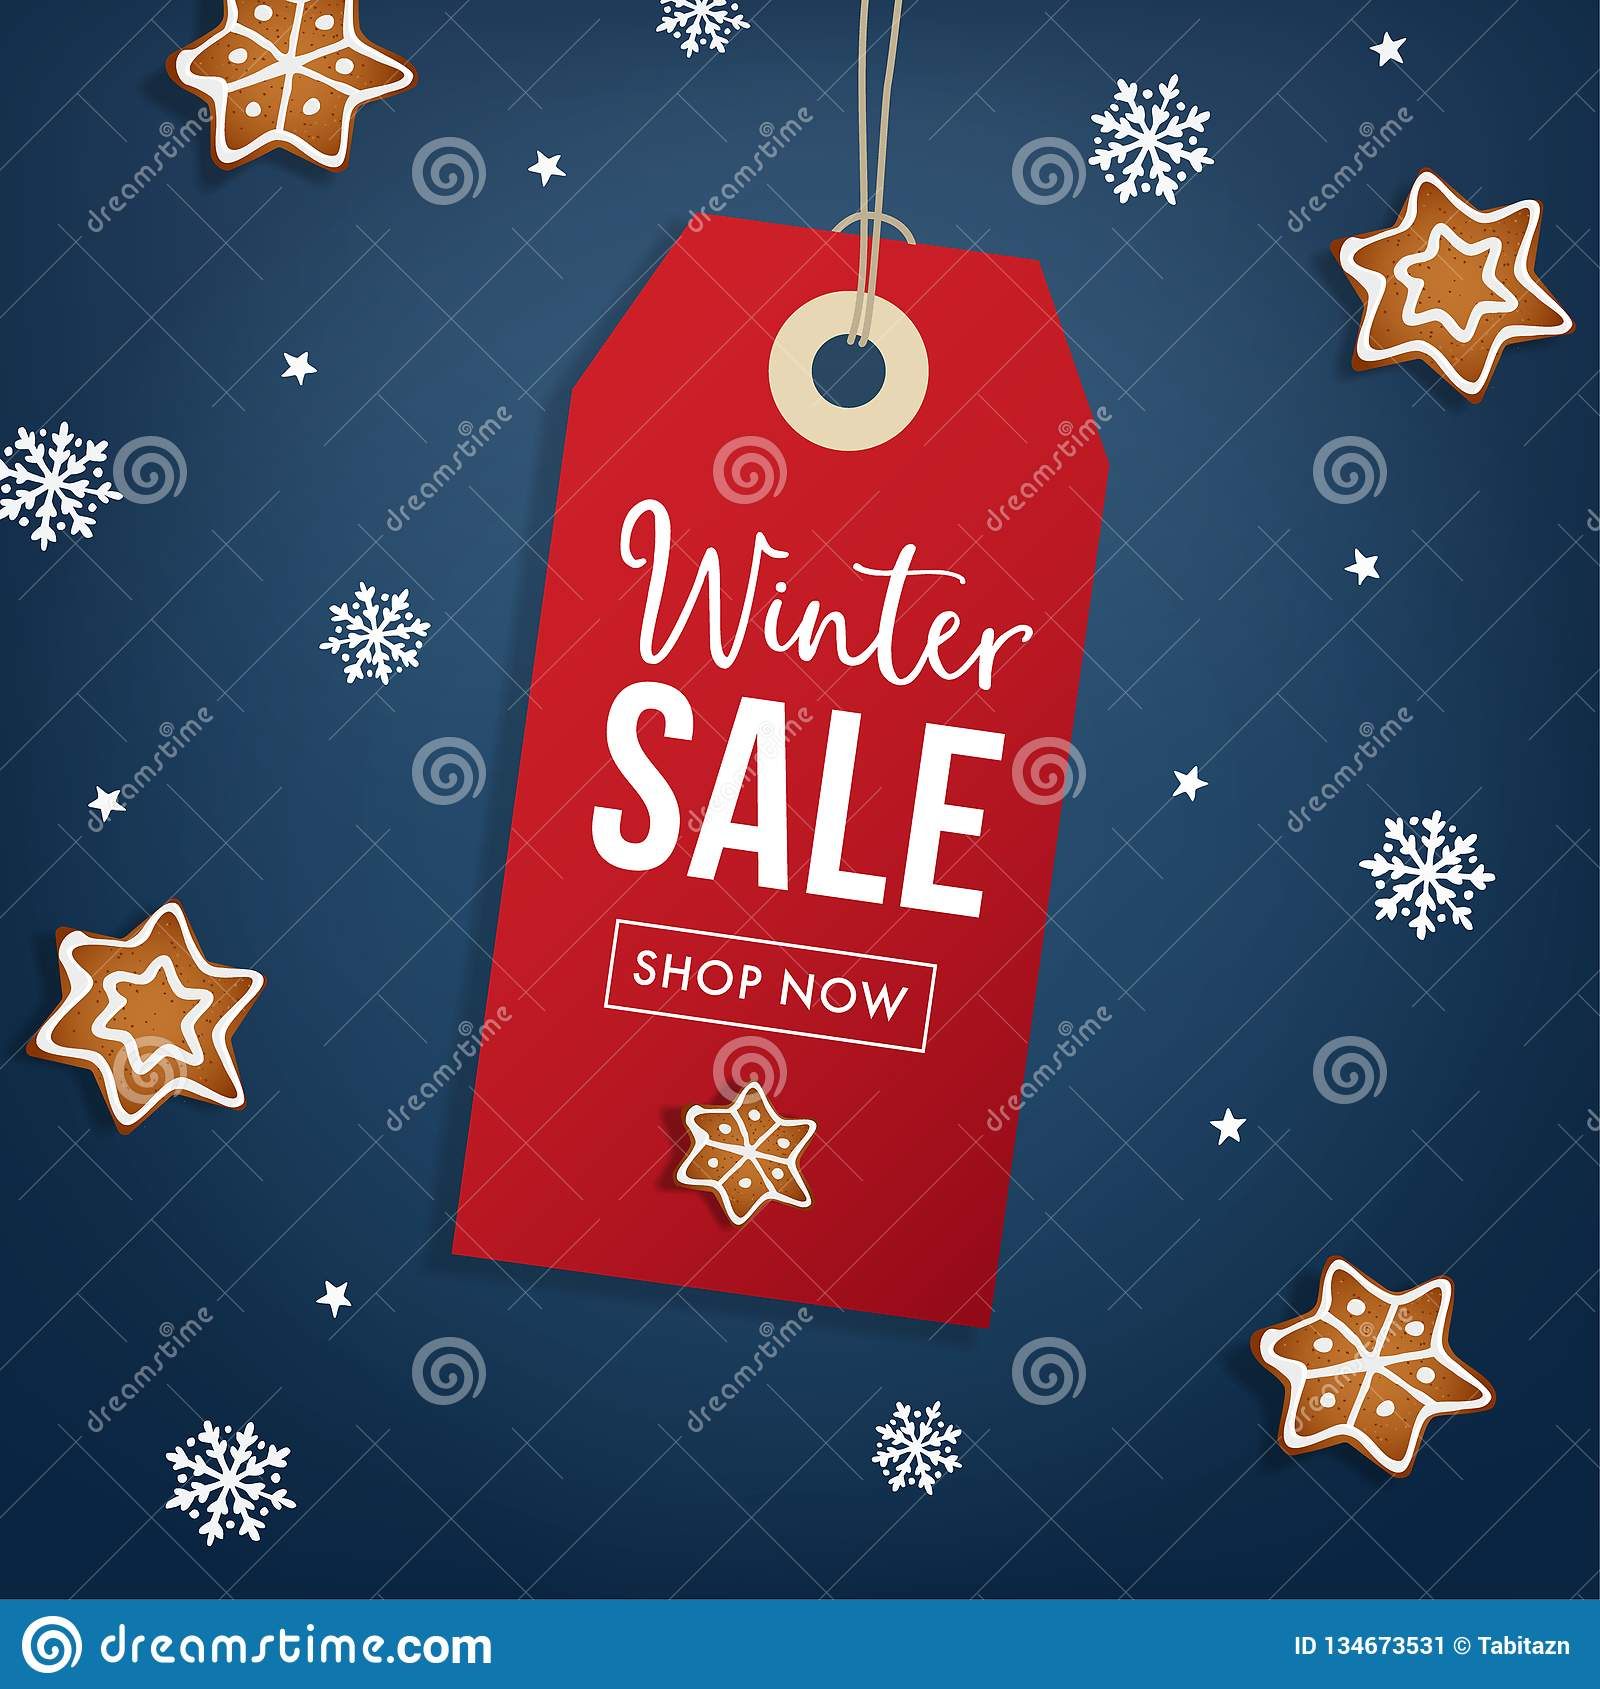 Winter Sale Poster Template. Hanging Red Gift Tag, Label